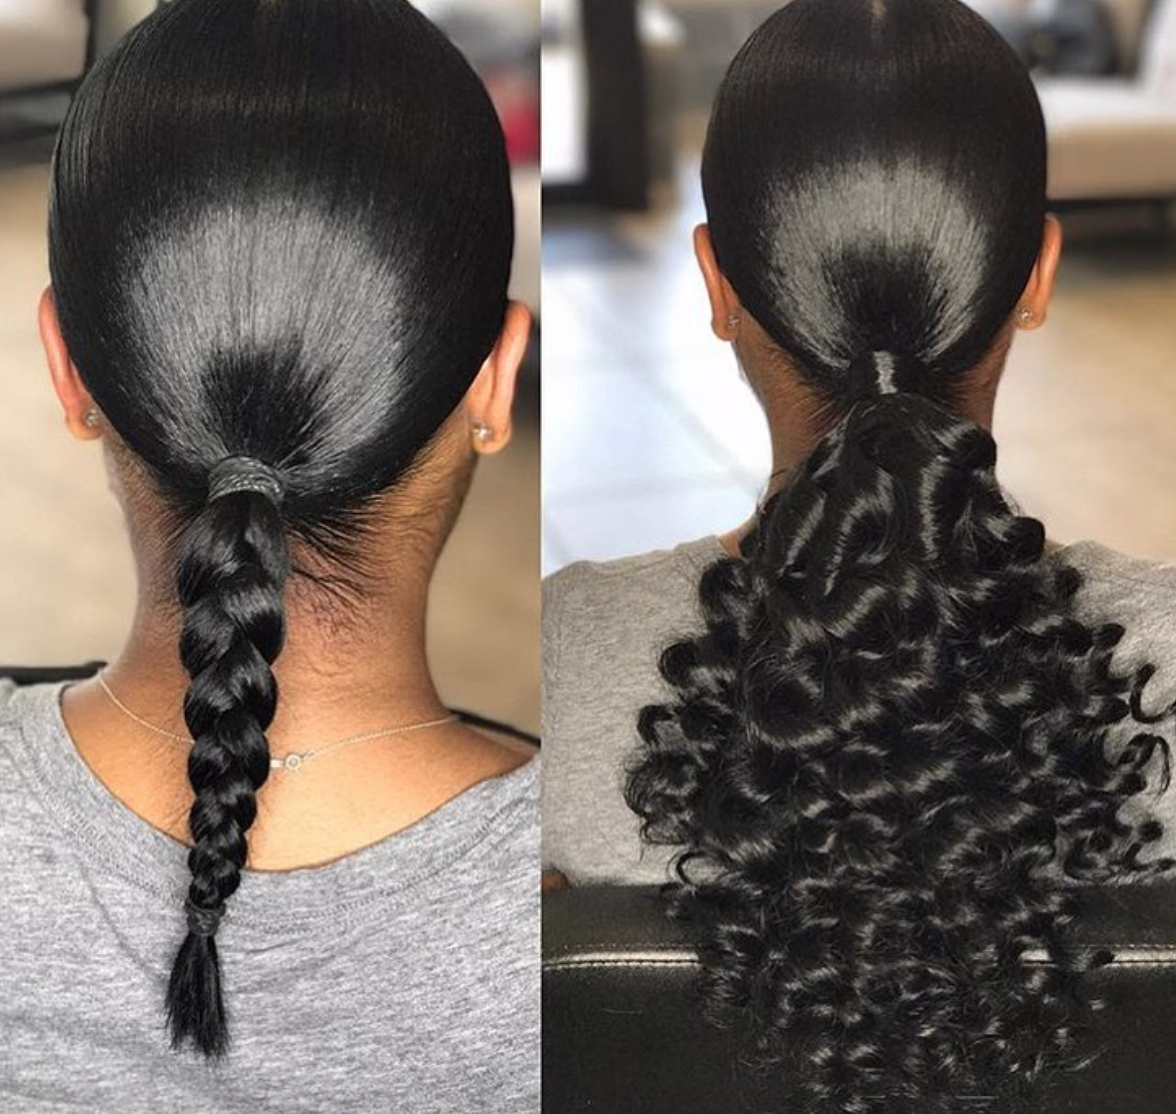 Nice natural ponytail via @keystylist - Black Hair Information